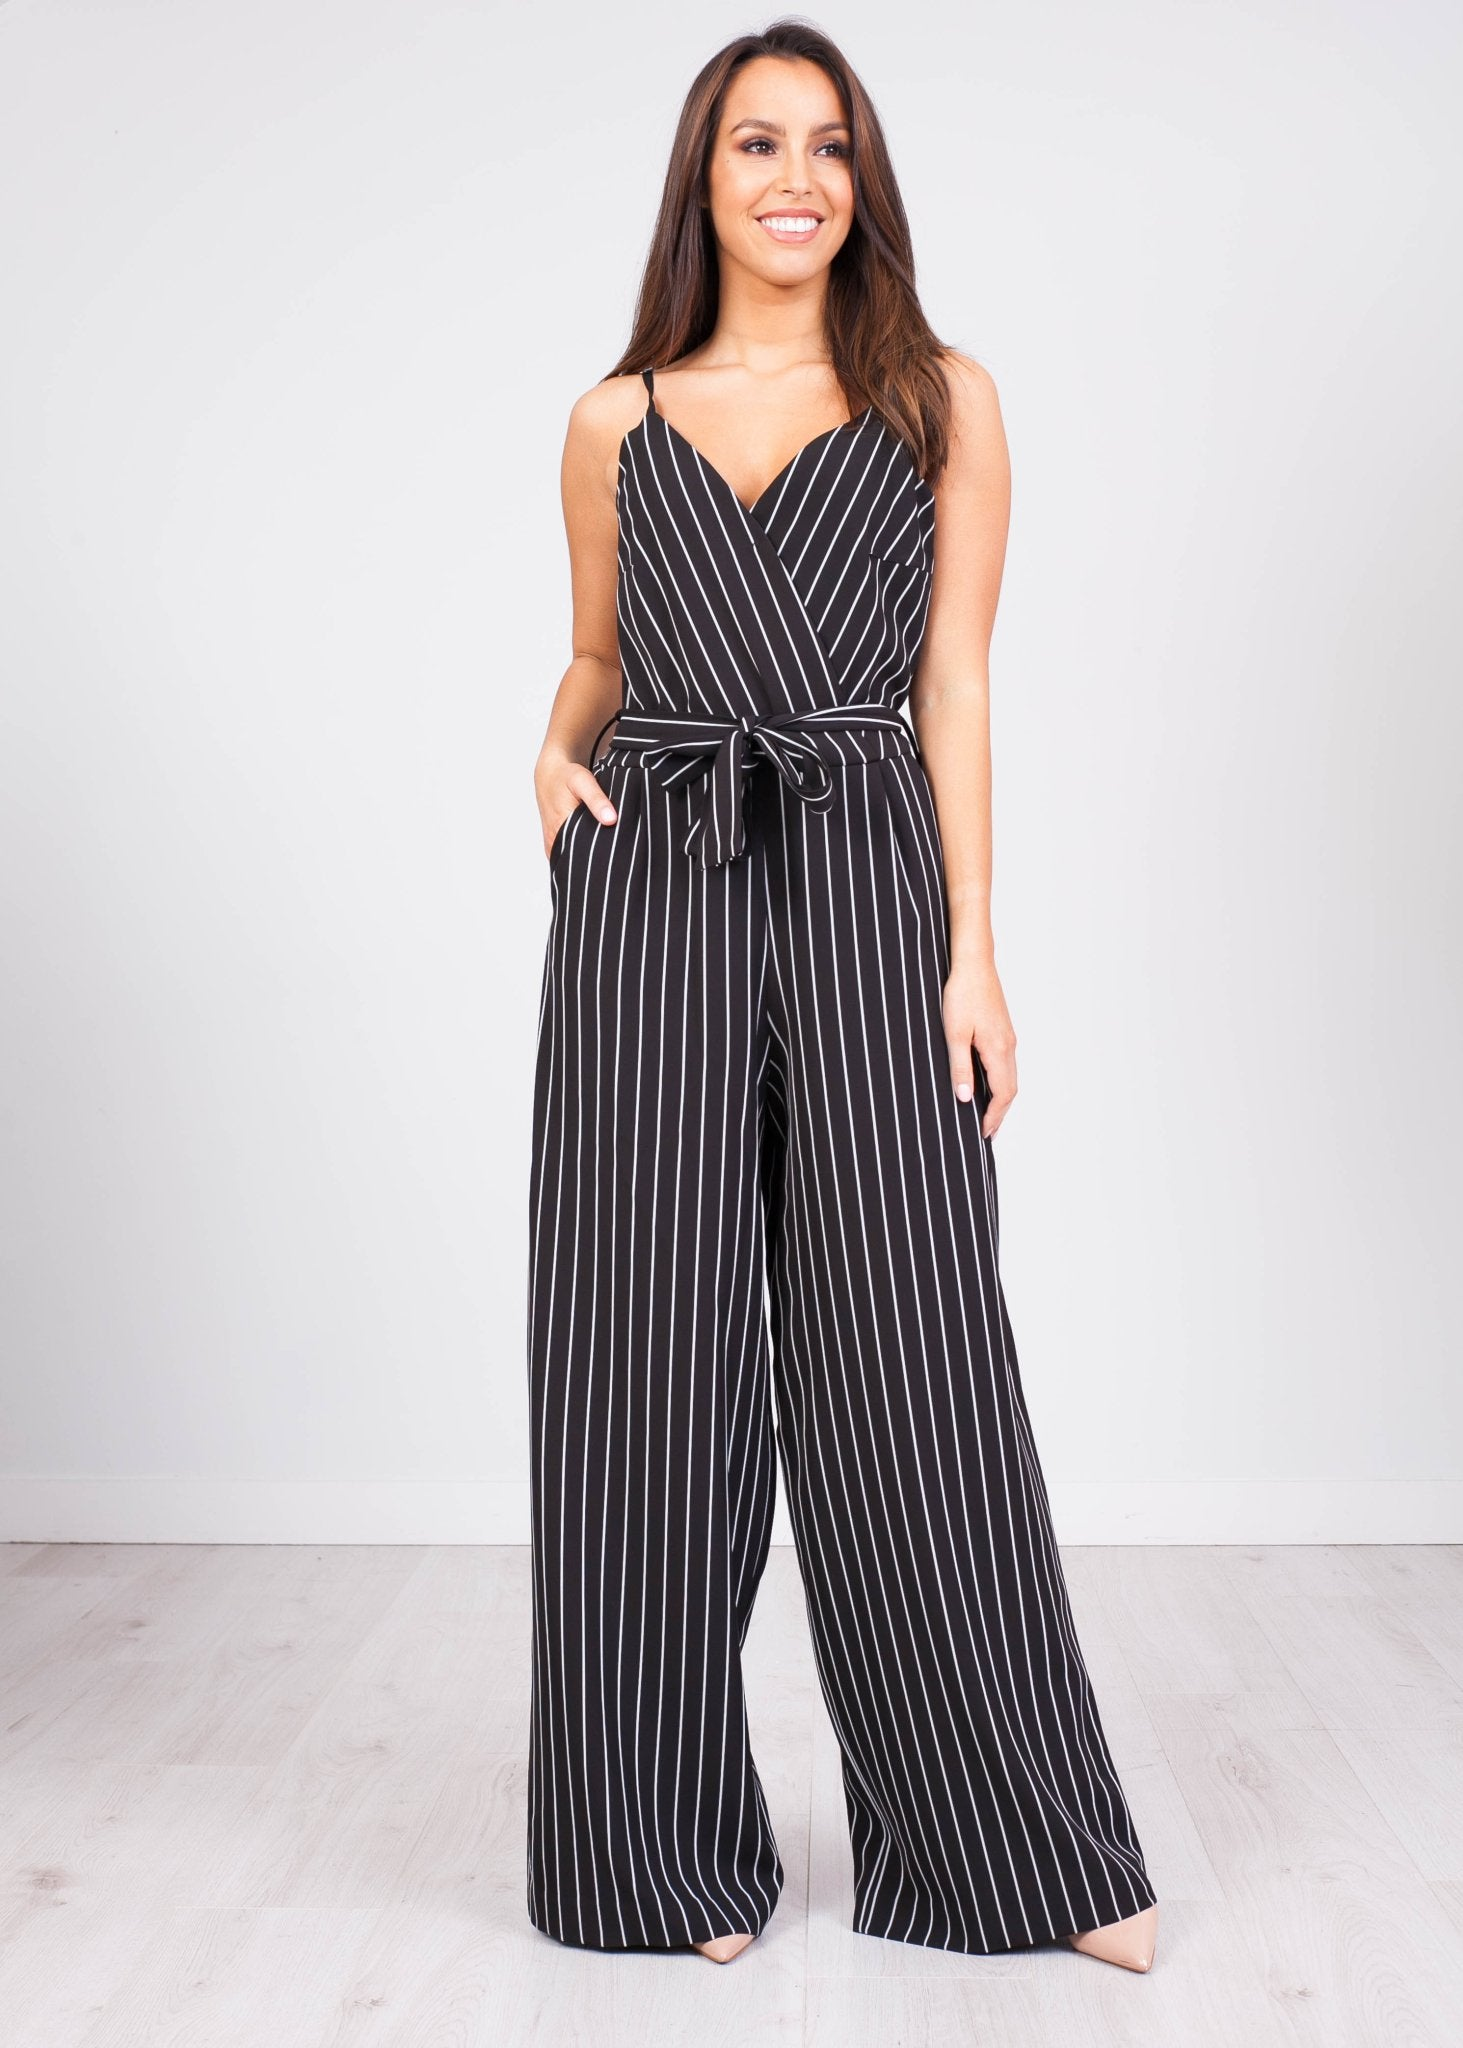 Tina Black Pinstripe Jumpsuit - The Walk in Wardrobe